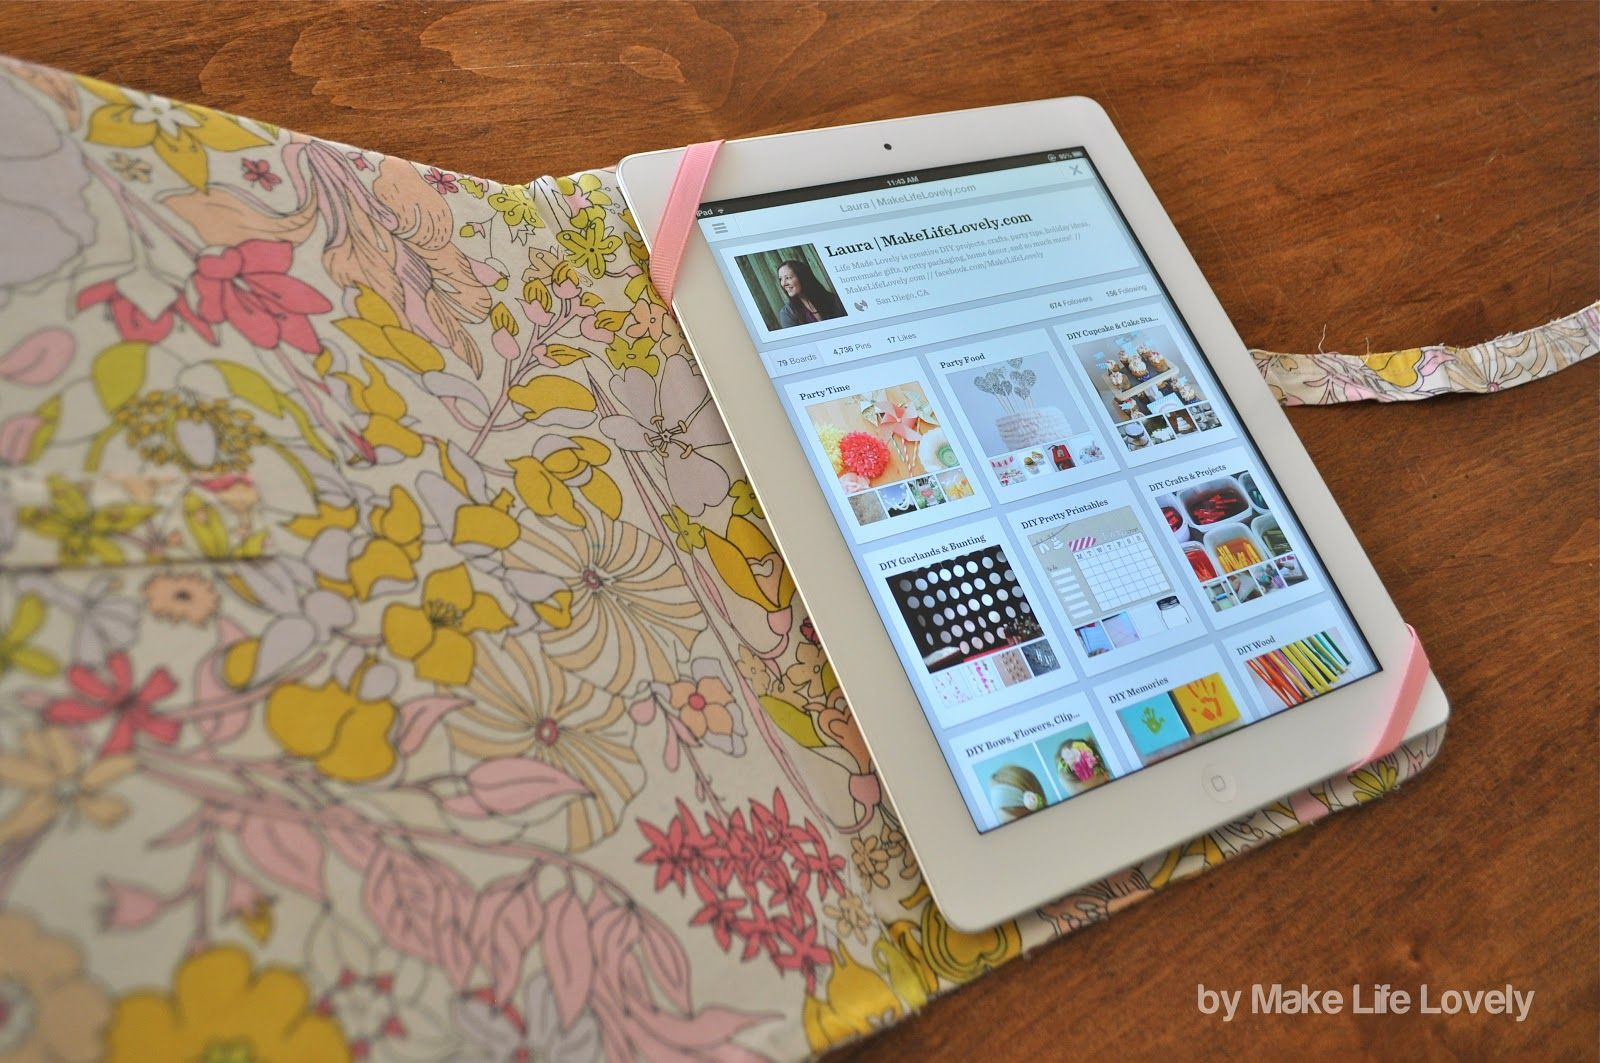 Diy Ipad Case Tutorial Made For Free Using Recycled Upcyled